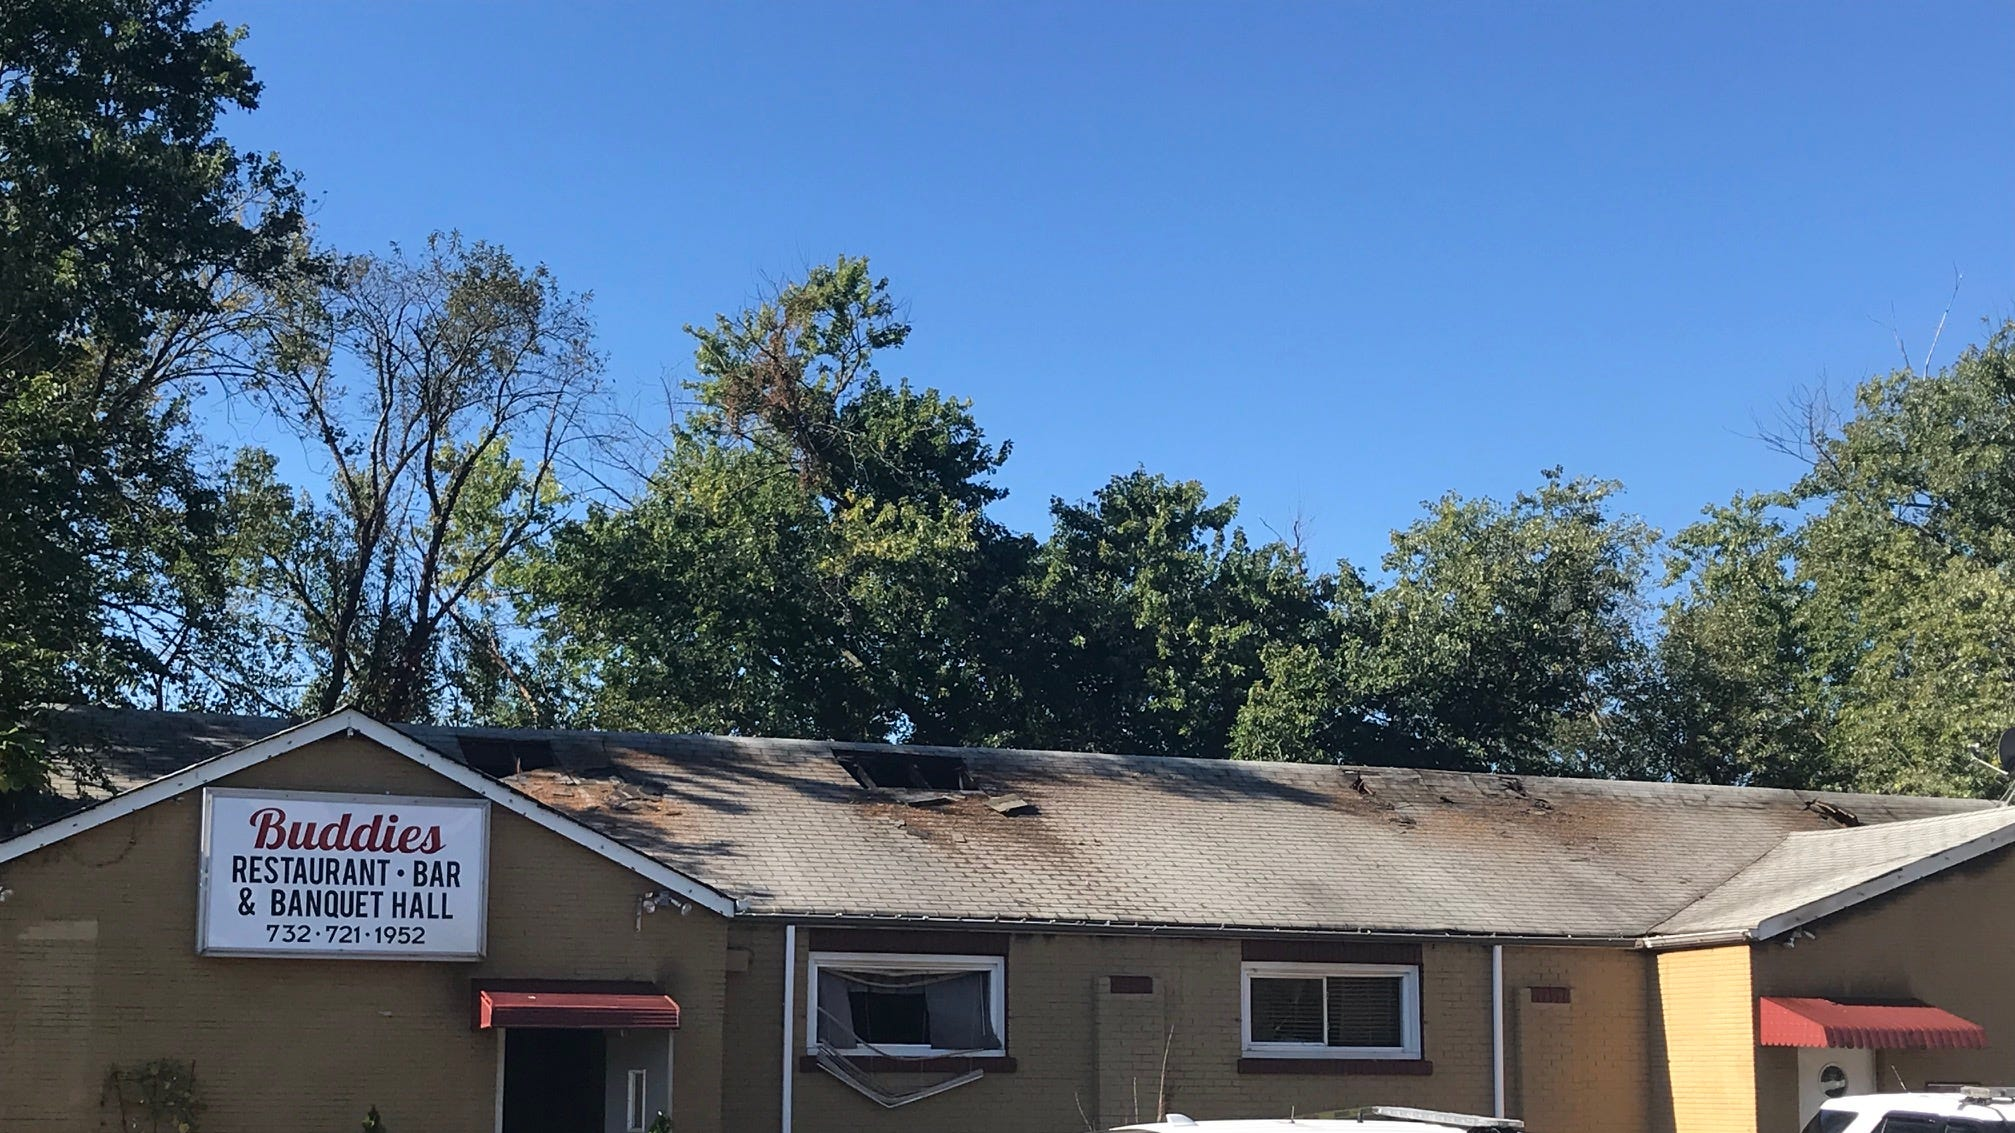 A fire reported early Wednesday morning, severely damaged Buddies Restaurant and Banquet Hall in the Parlin section of Sayreville.